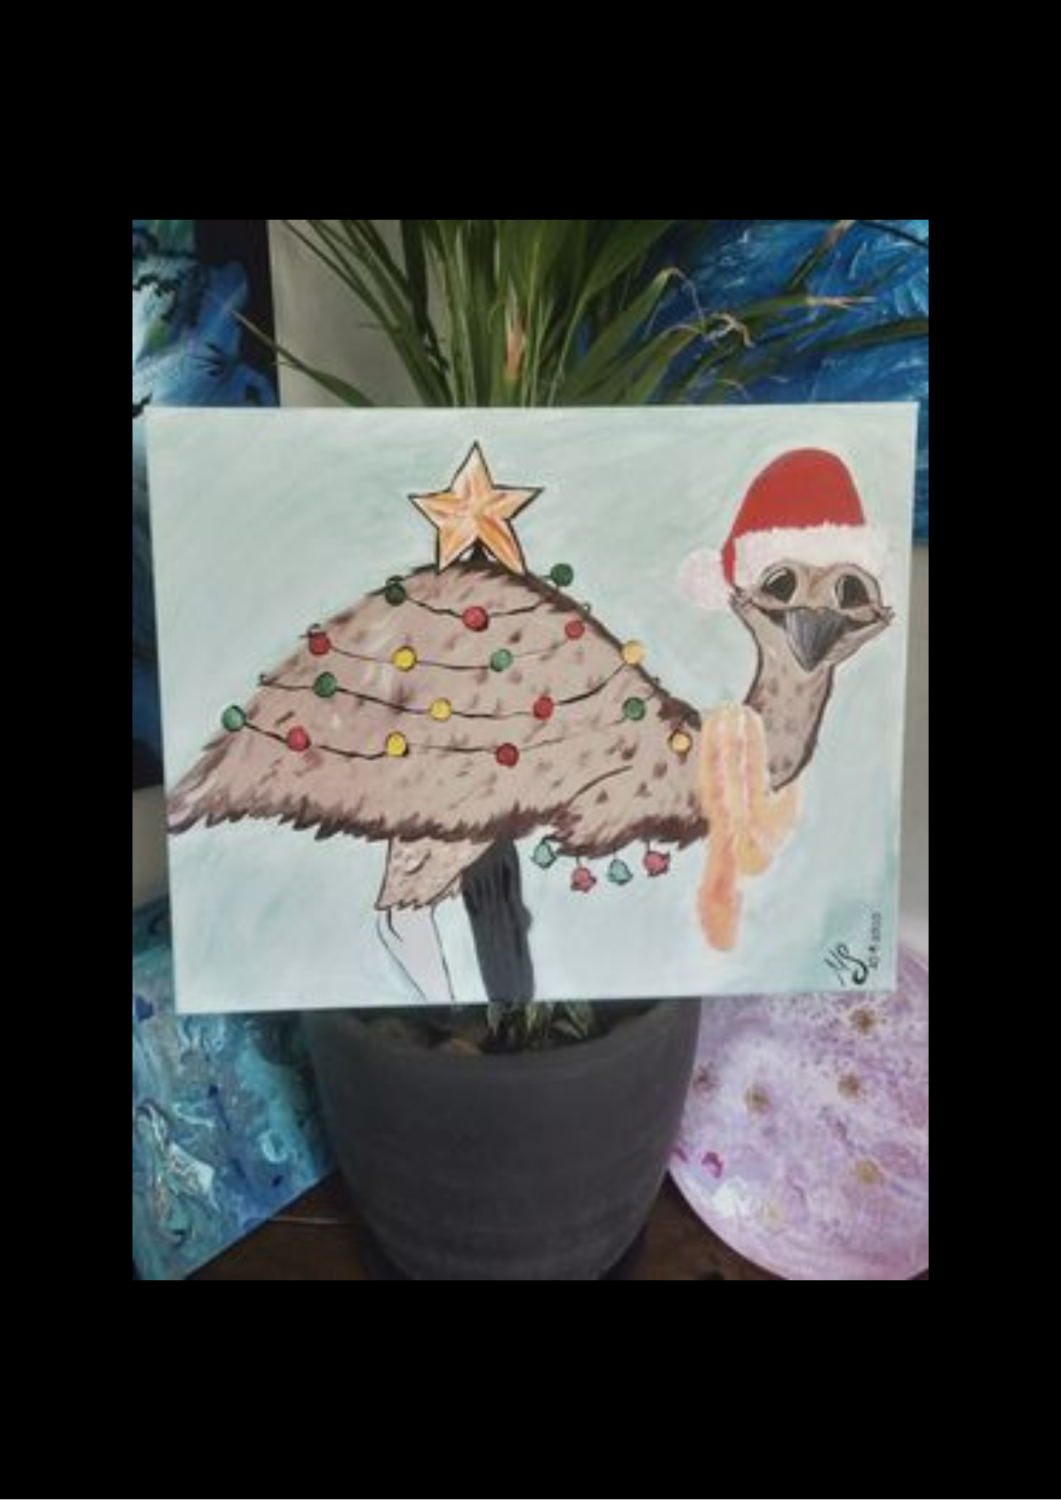 Paint pARTy at Sydney Junction Hotel, Tues 8th December, 6-8:30pm